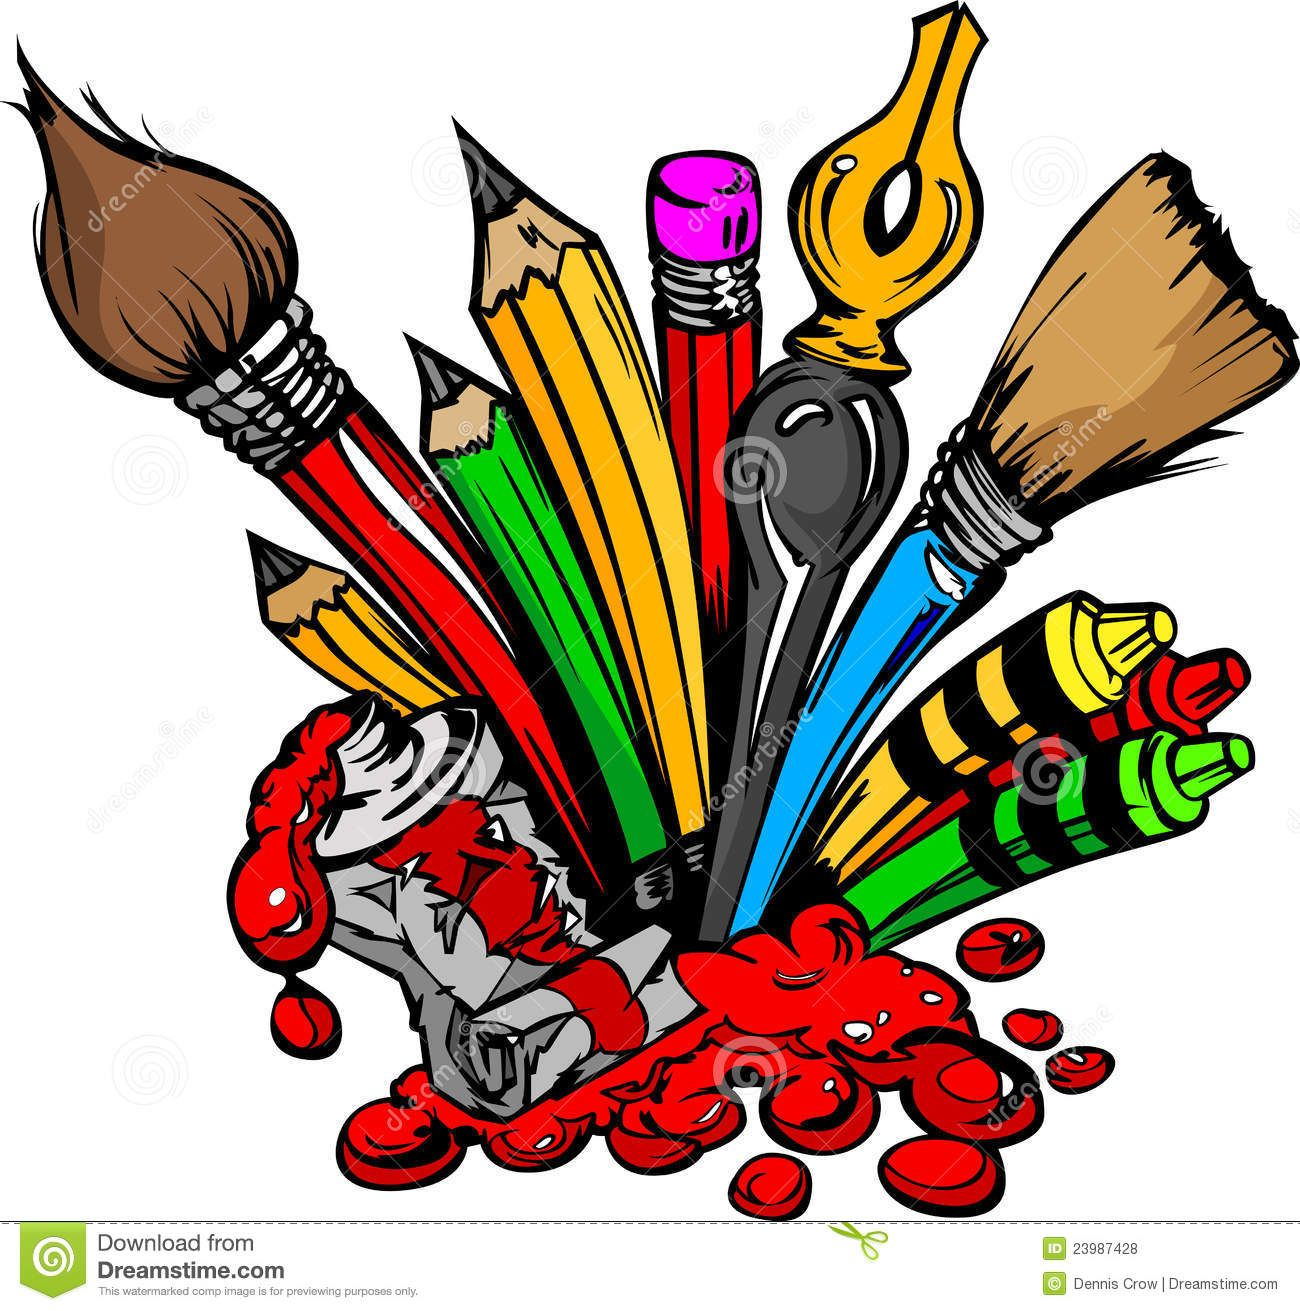 Art Supplies Images Clipart Panda Free Clipart Images Free